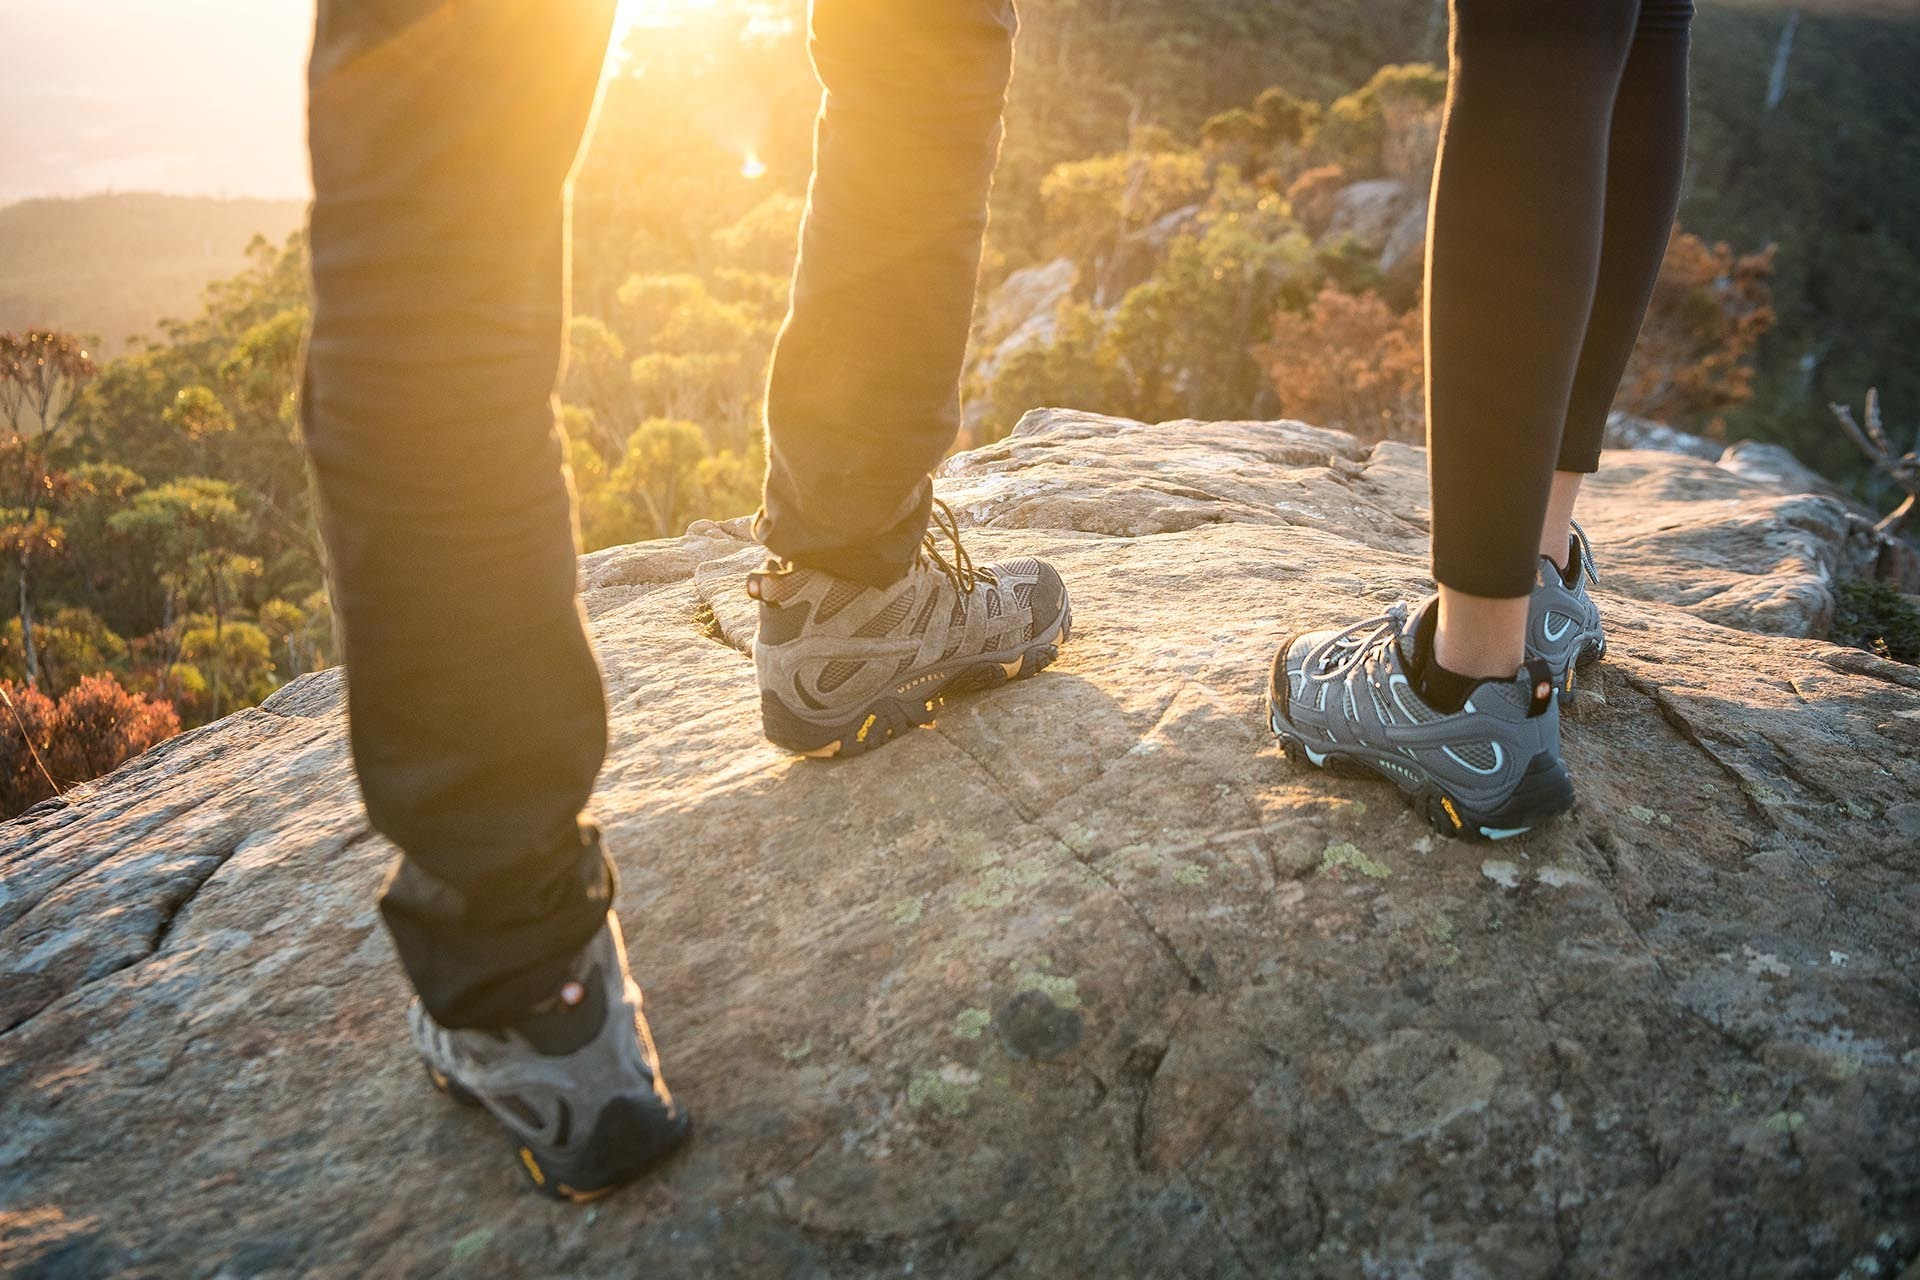 Trail Runners Versus Hiking Boots, Merrell, Hike, Trail Running Shoes